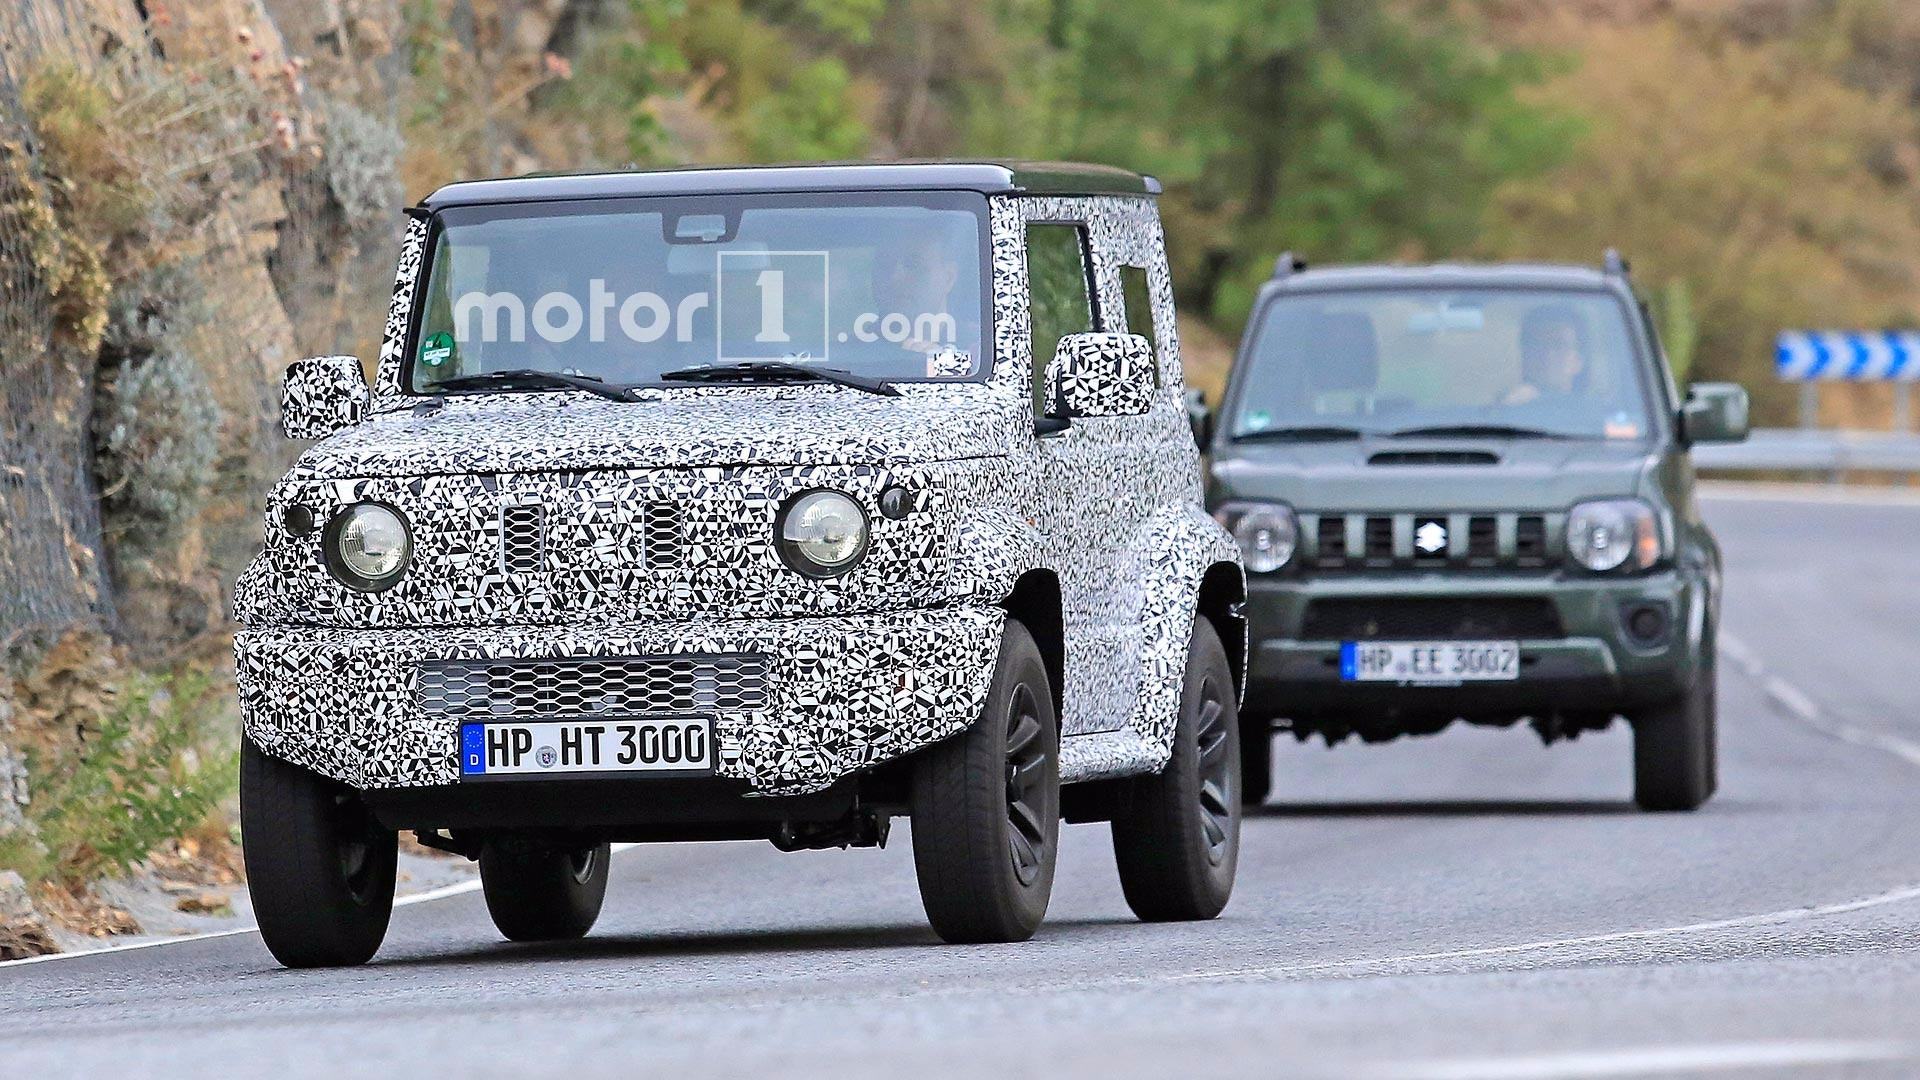 2019 Suzuki Jimny >> Next-gen Suzuki Jimny Spied Testing With Current Model